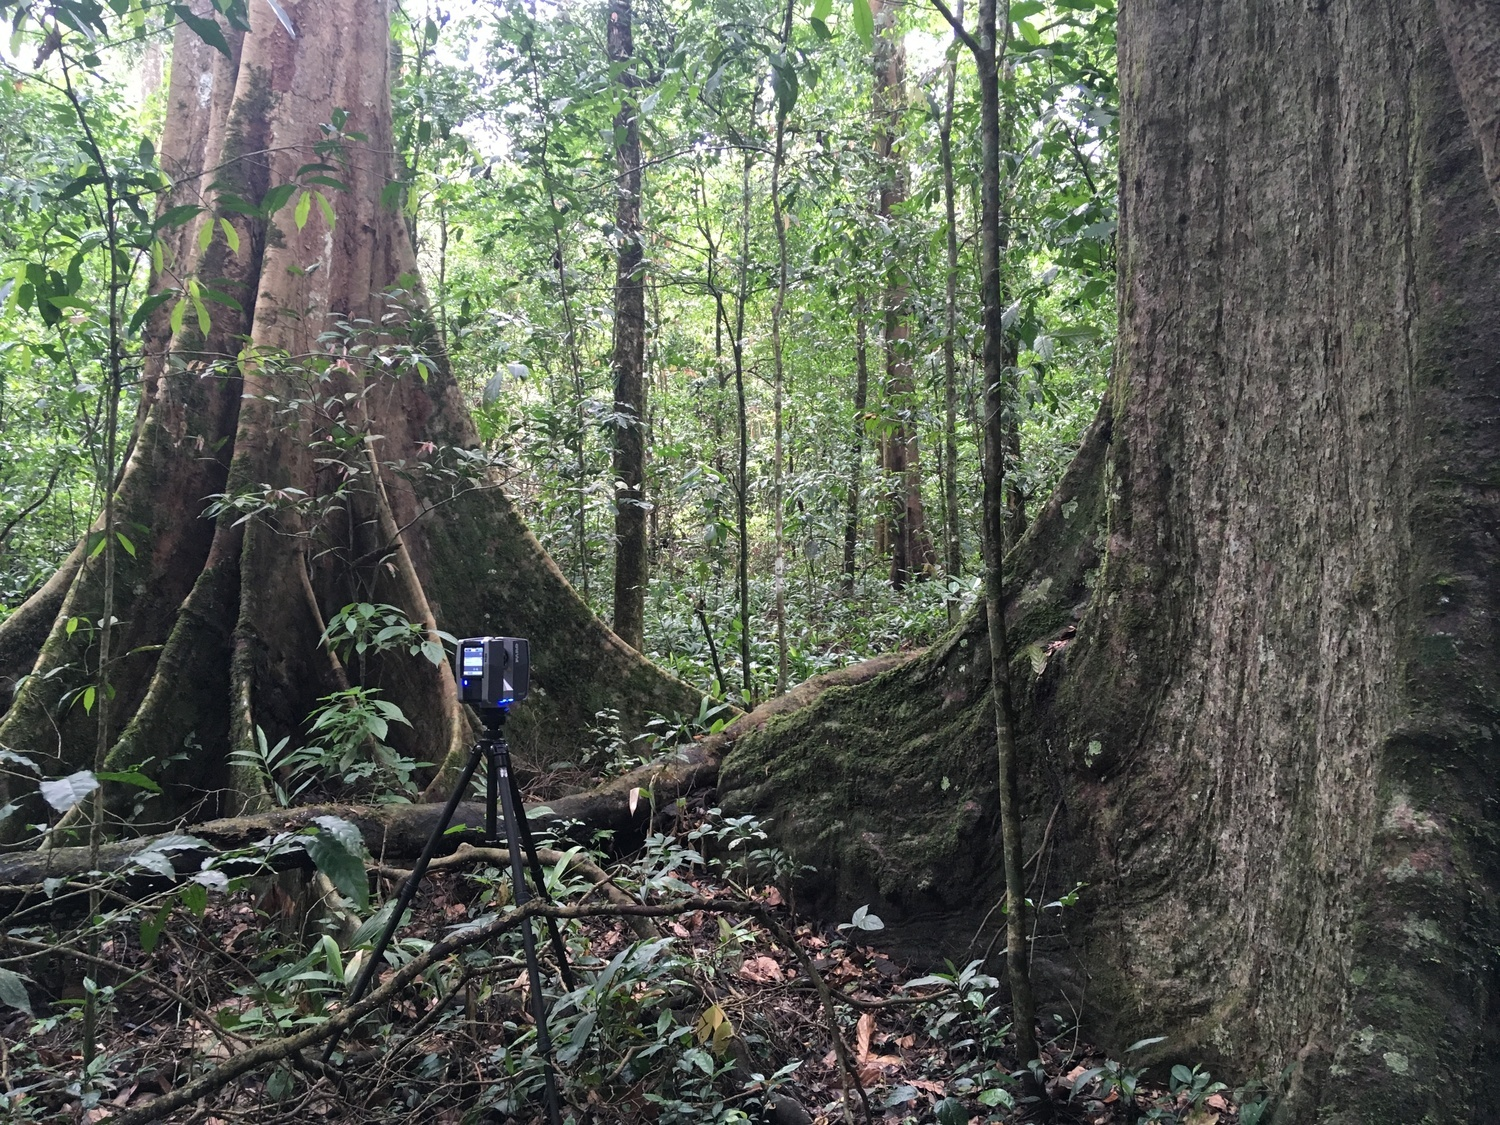 3D laser scanners were set up in many forest areas around the world. The tropical rainforest in Uganda is shown here.